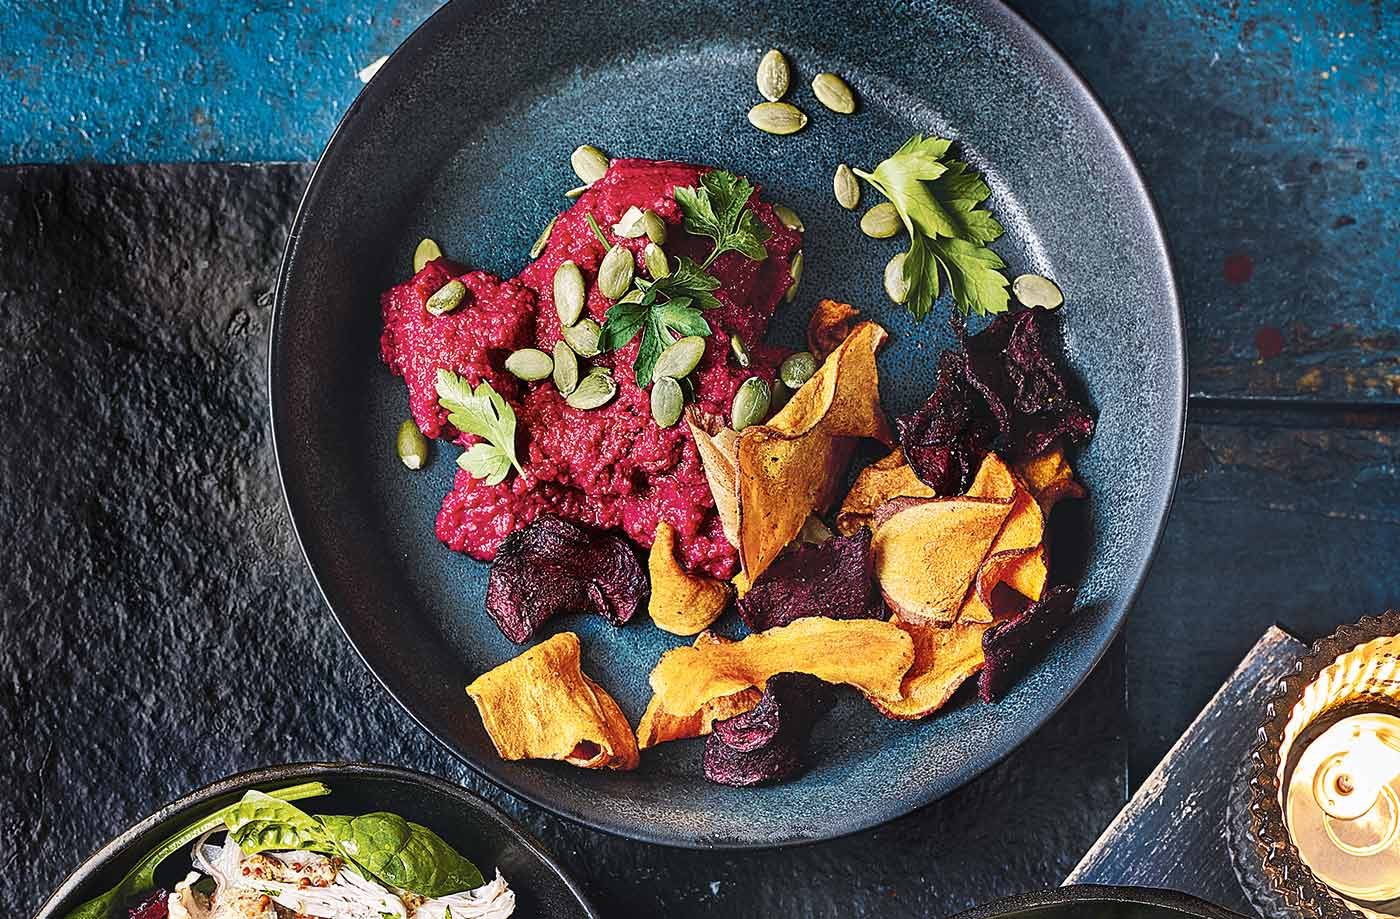 Beetroot houmous bowls recipe